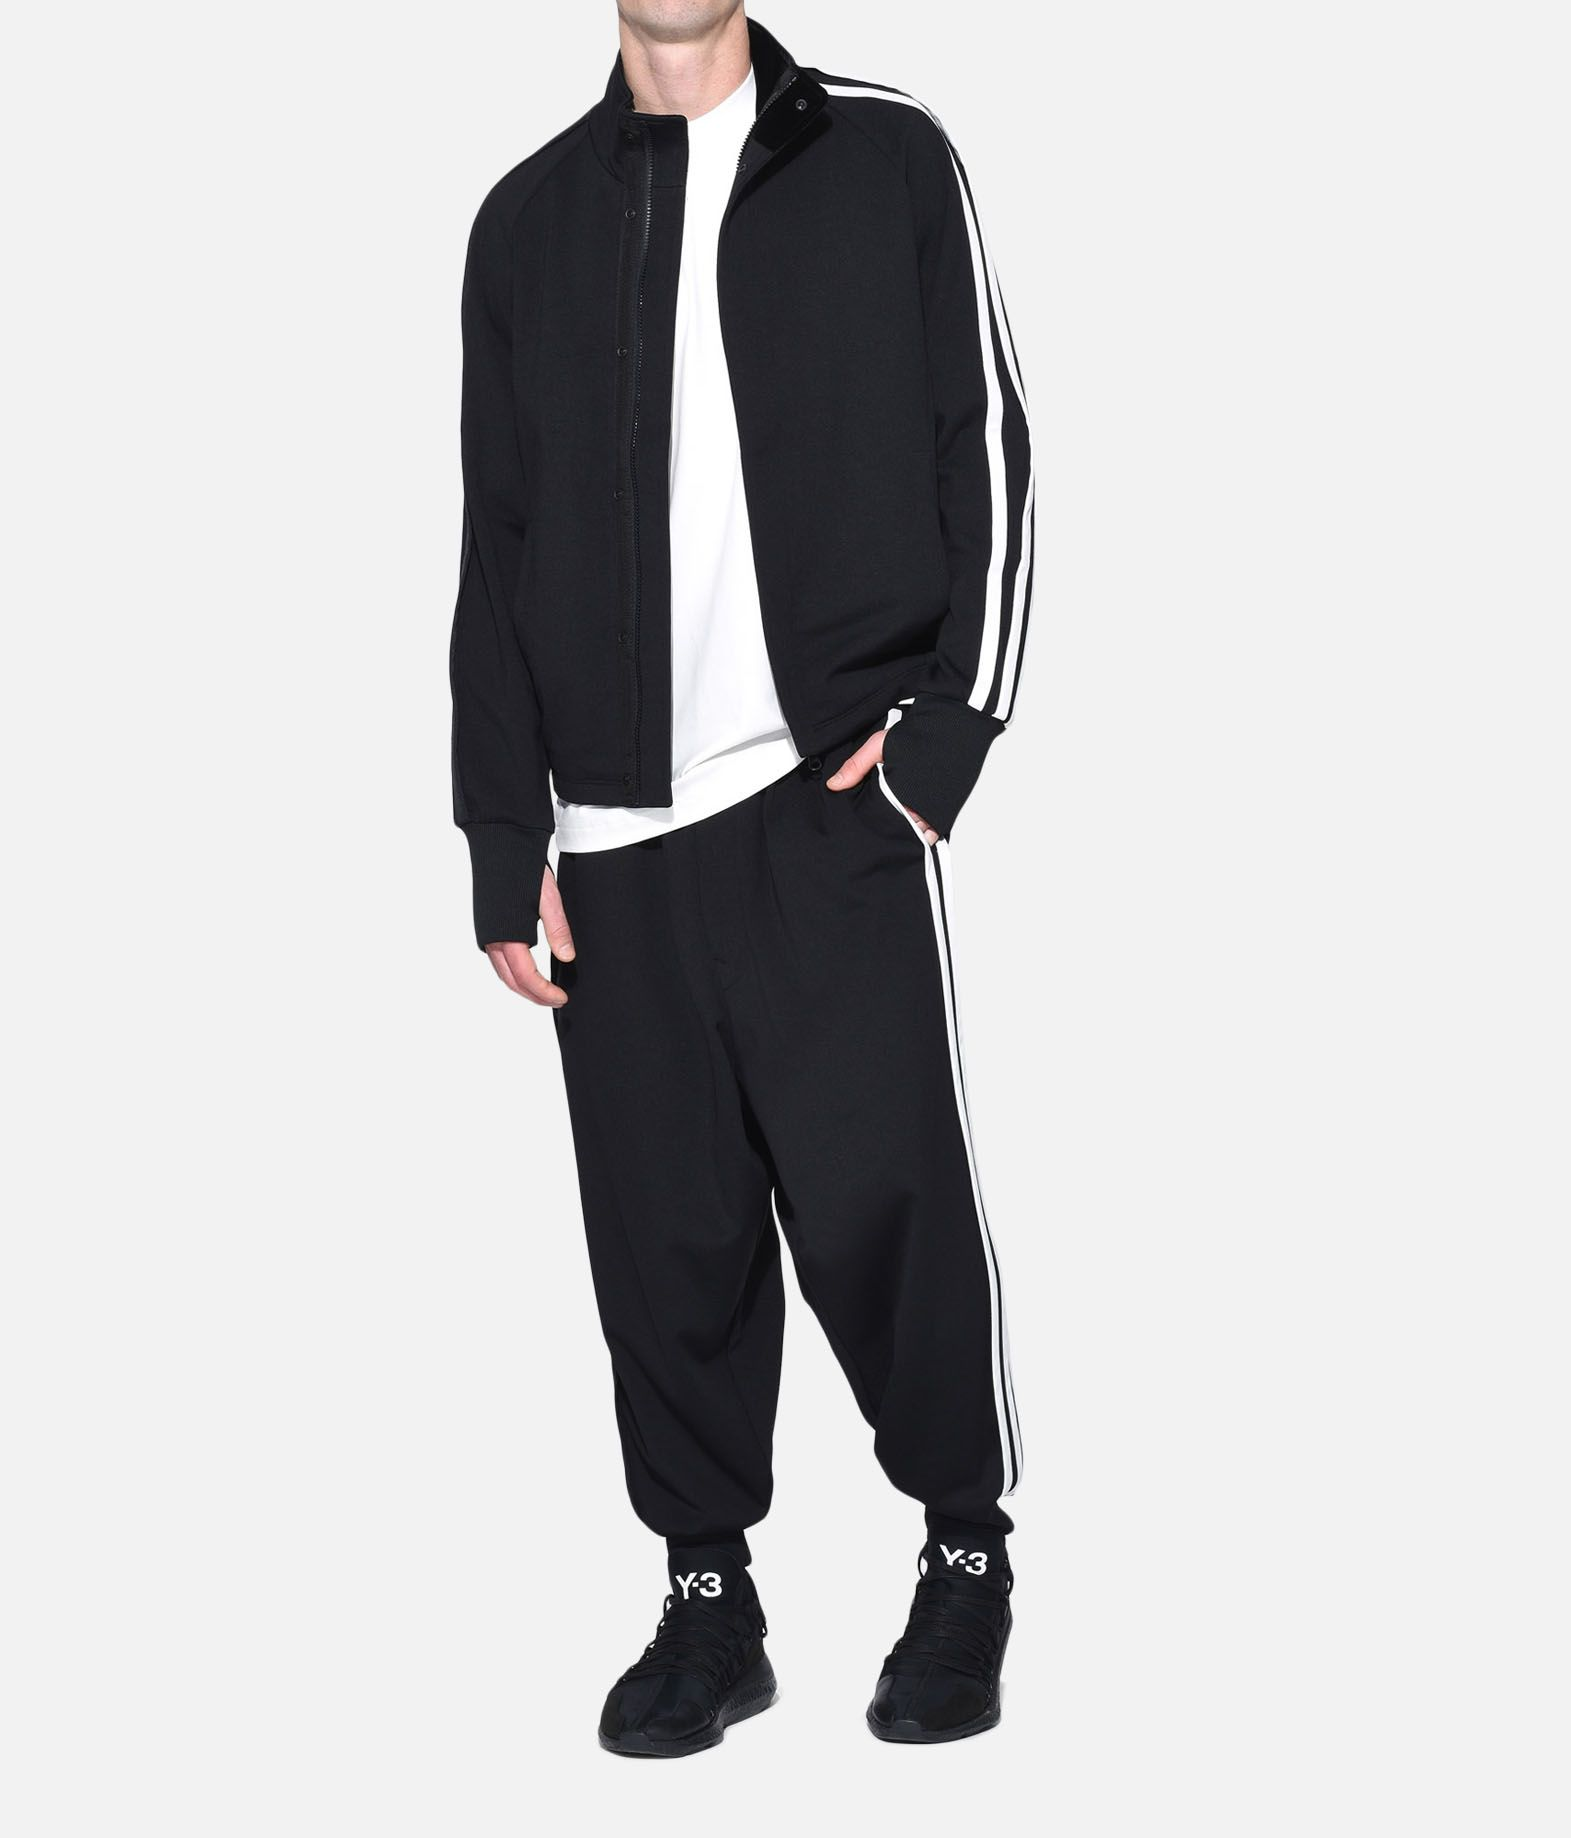 Y-3 Y-3 3-Stripes Selvedge Matte Track Jacket Track top Man a